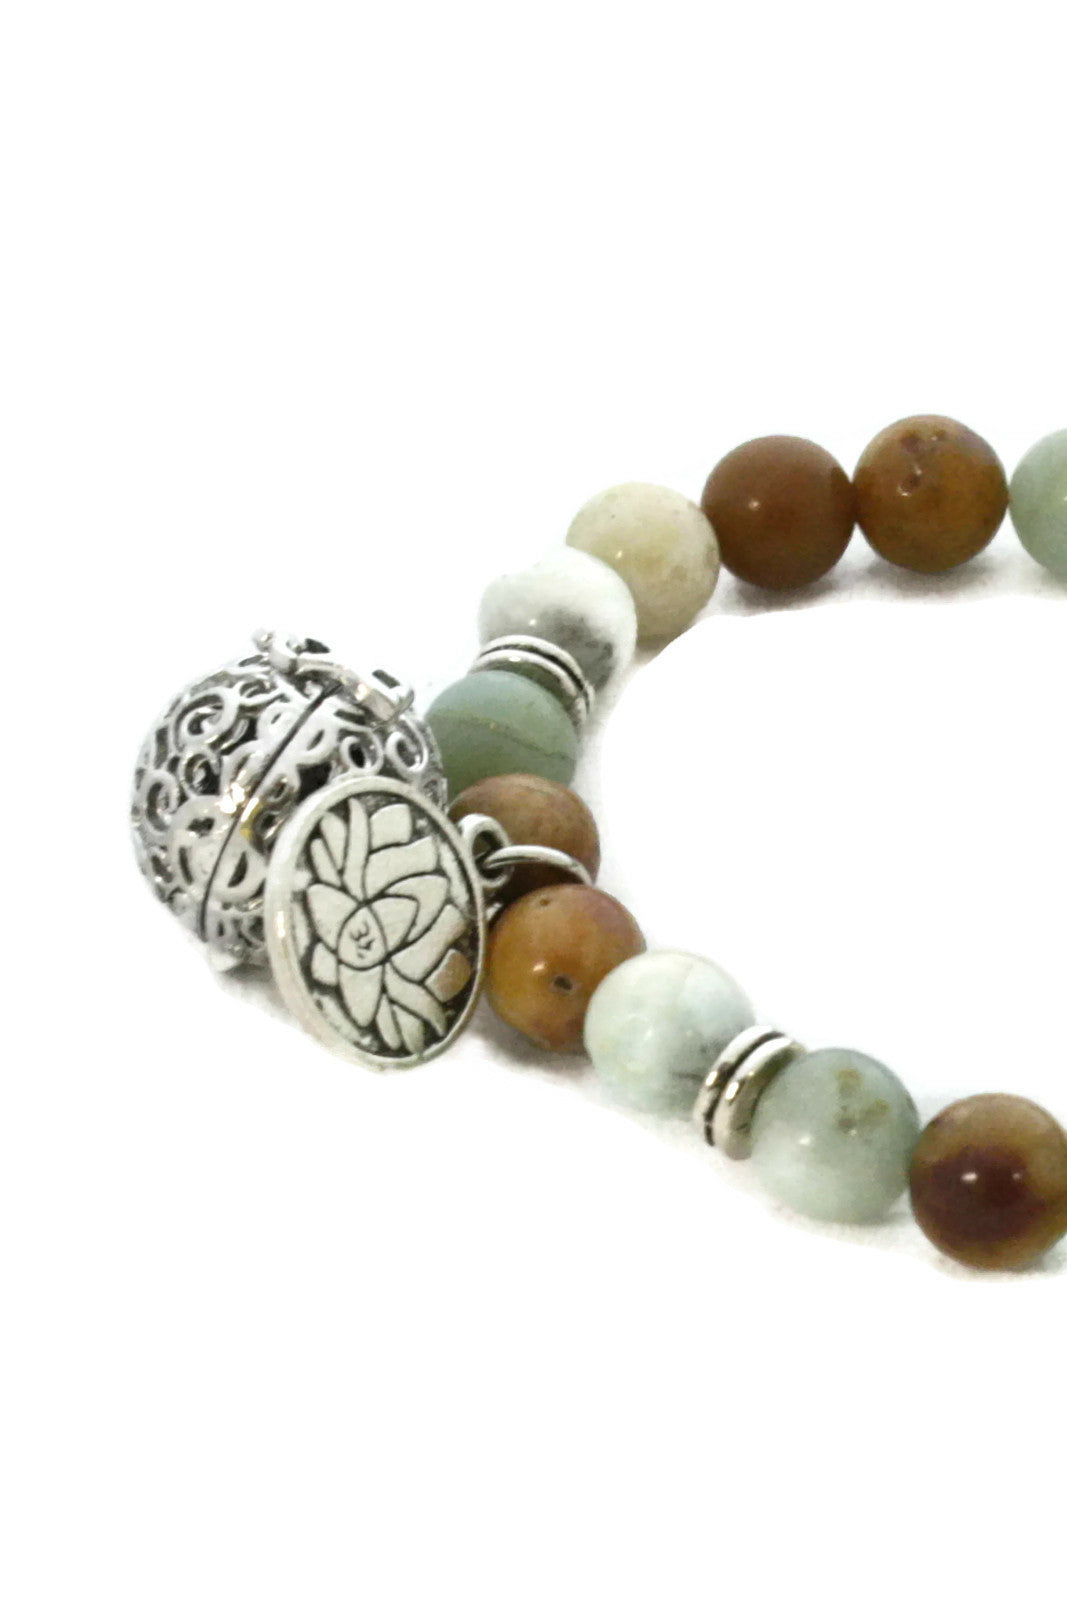 Canyon Natural Stone Essential Oil Diffuser Bracelet- Lotus Charm-Diffuser Bracelet-Destination Oils